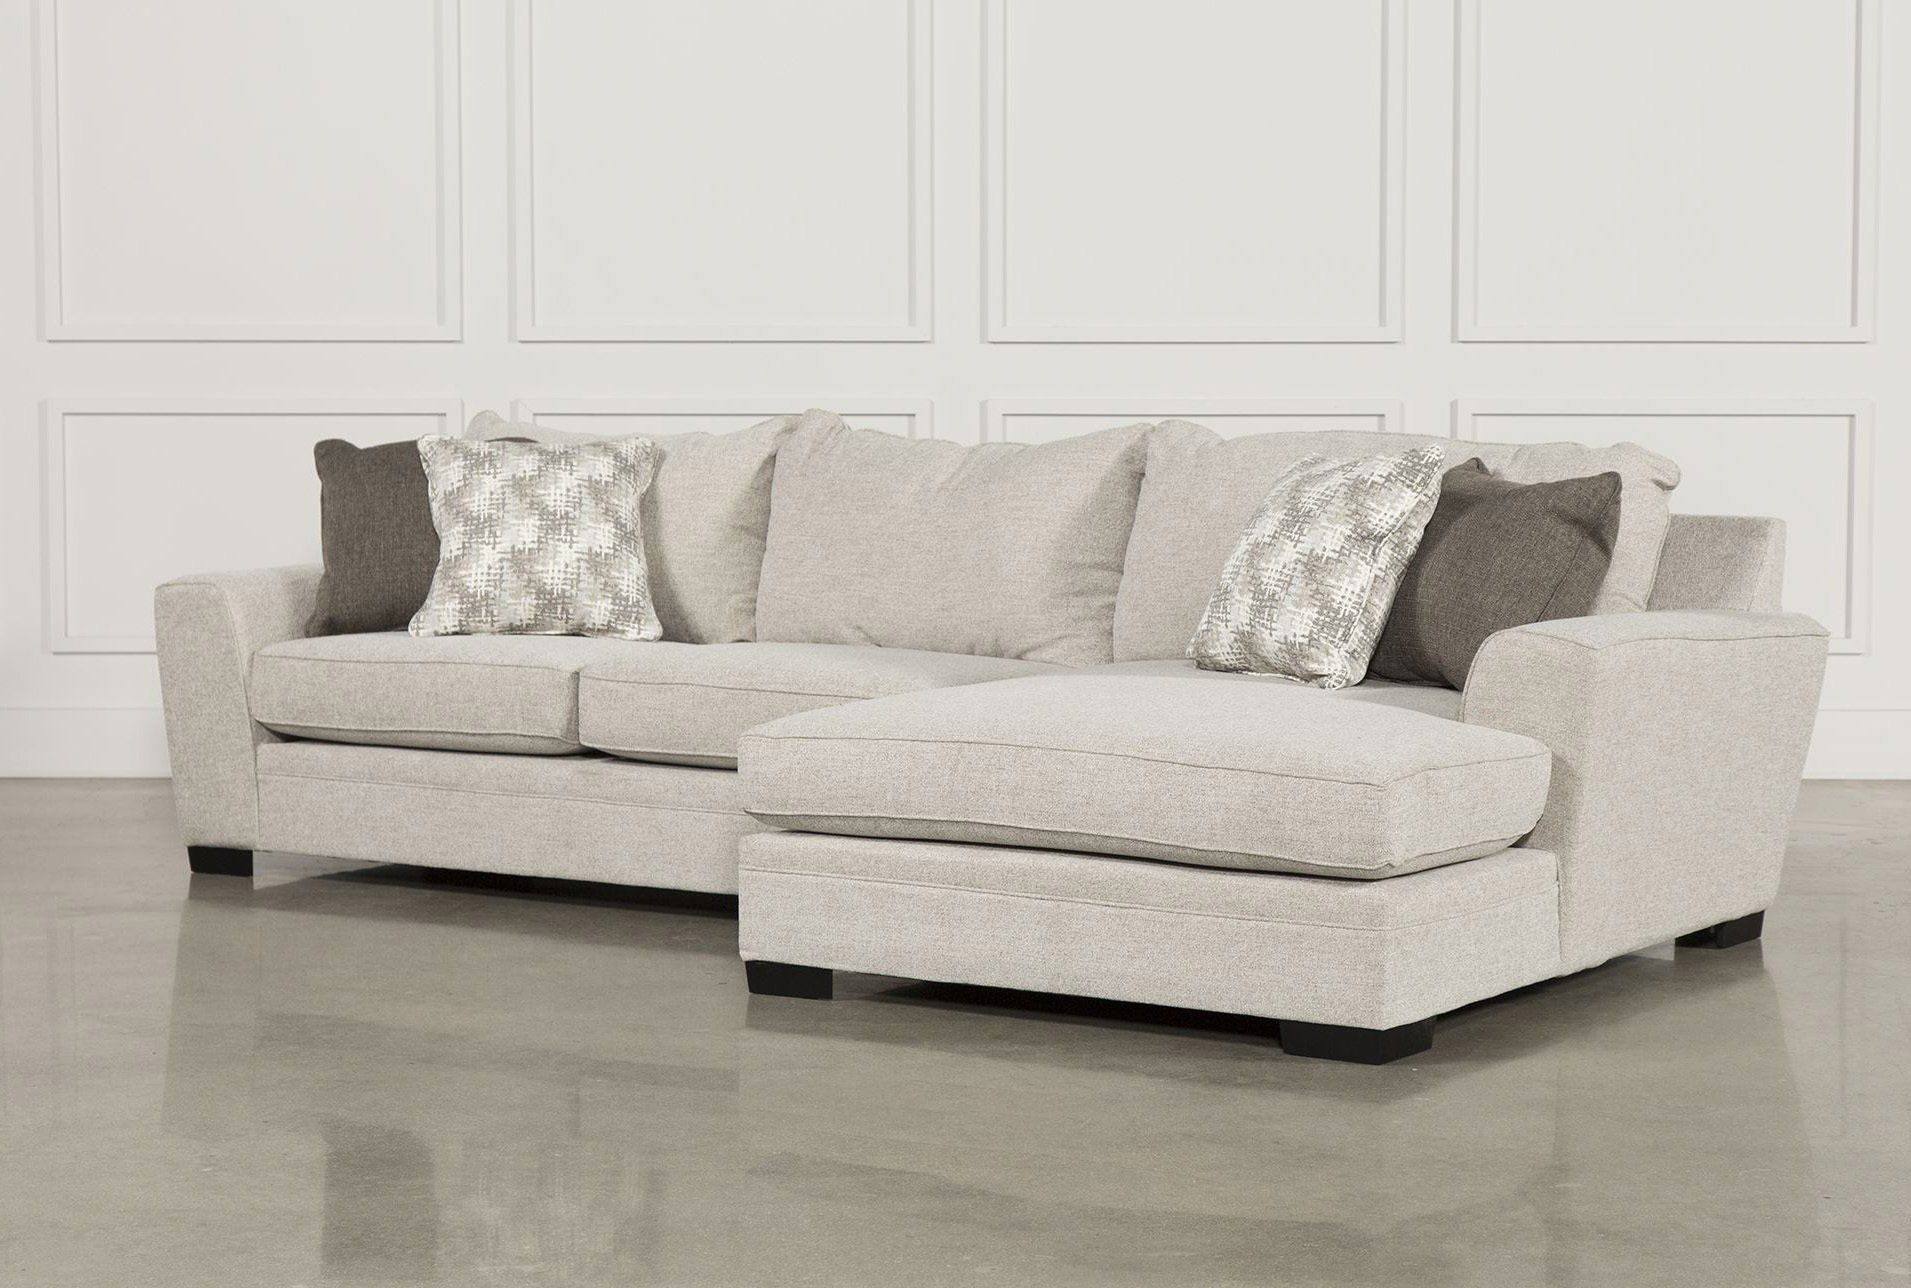 Delano 2 Piece Sectional W/raf Oversized Chaise | Products for Aspen 2 Piece Sleeper Sectionals With Laf Chaise (Image 12 of 30)